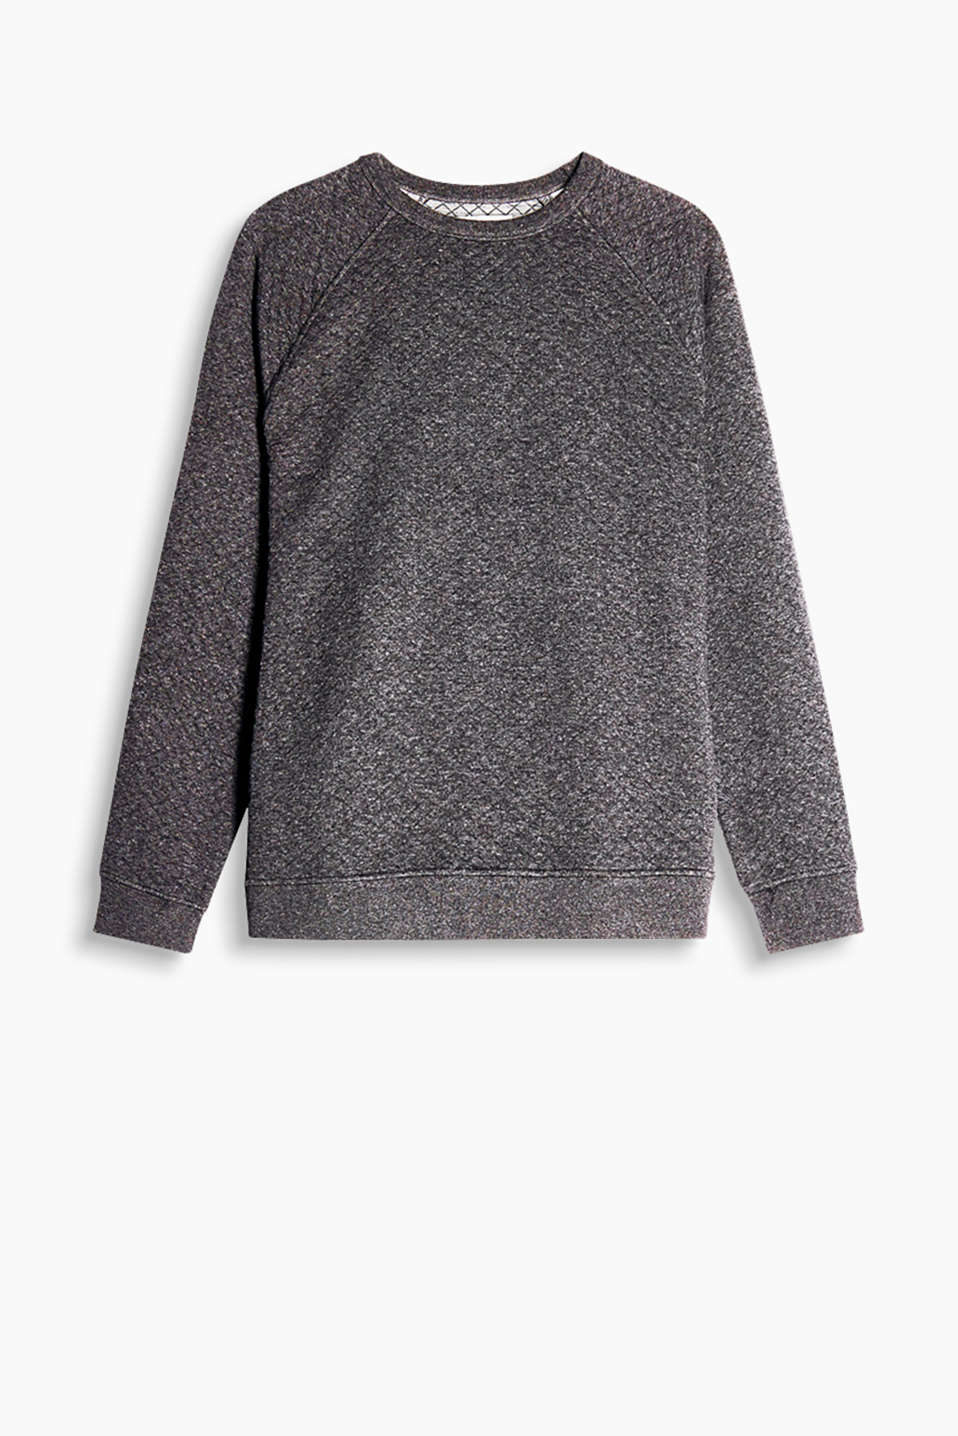 Made of soft blended cotton: Sweatshirt with a round neckline, raglan sleeves and a cross-shaped topstitching